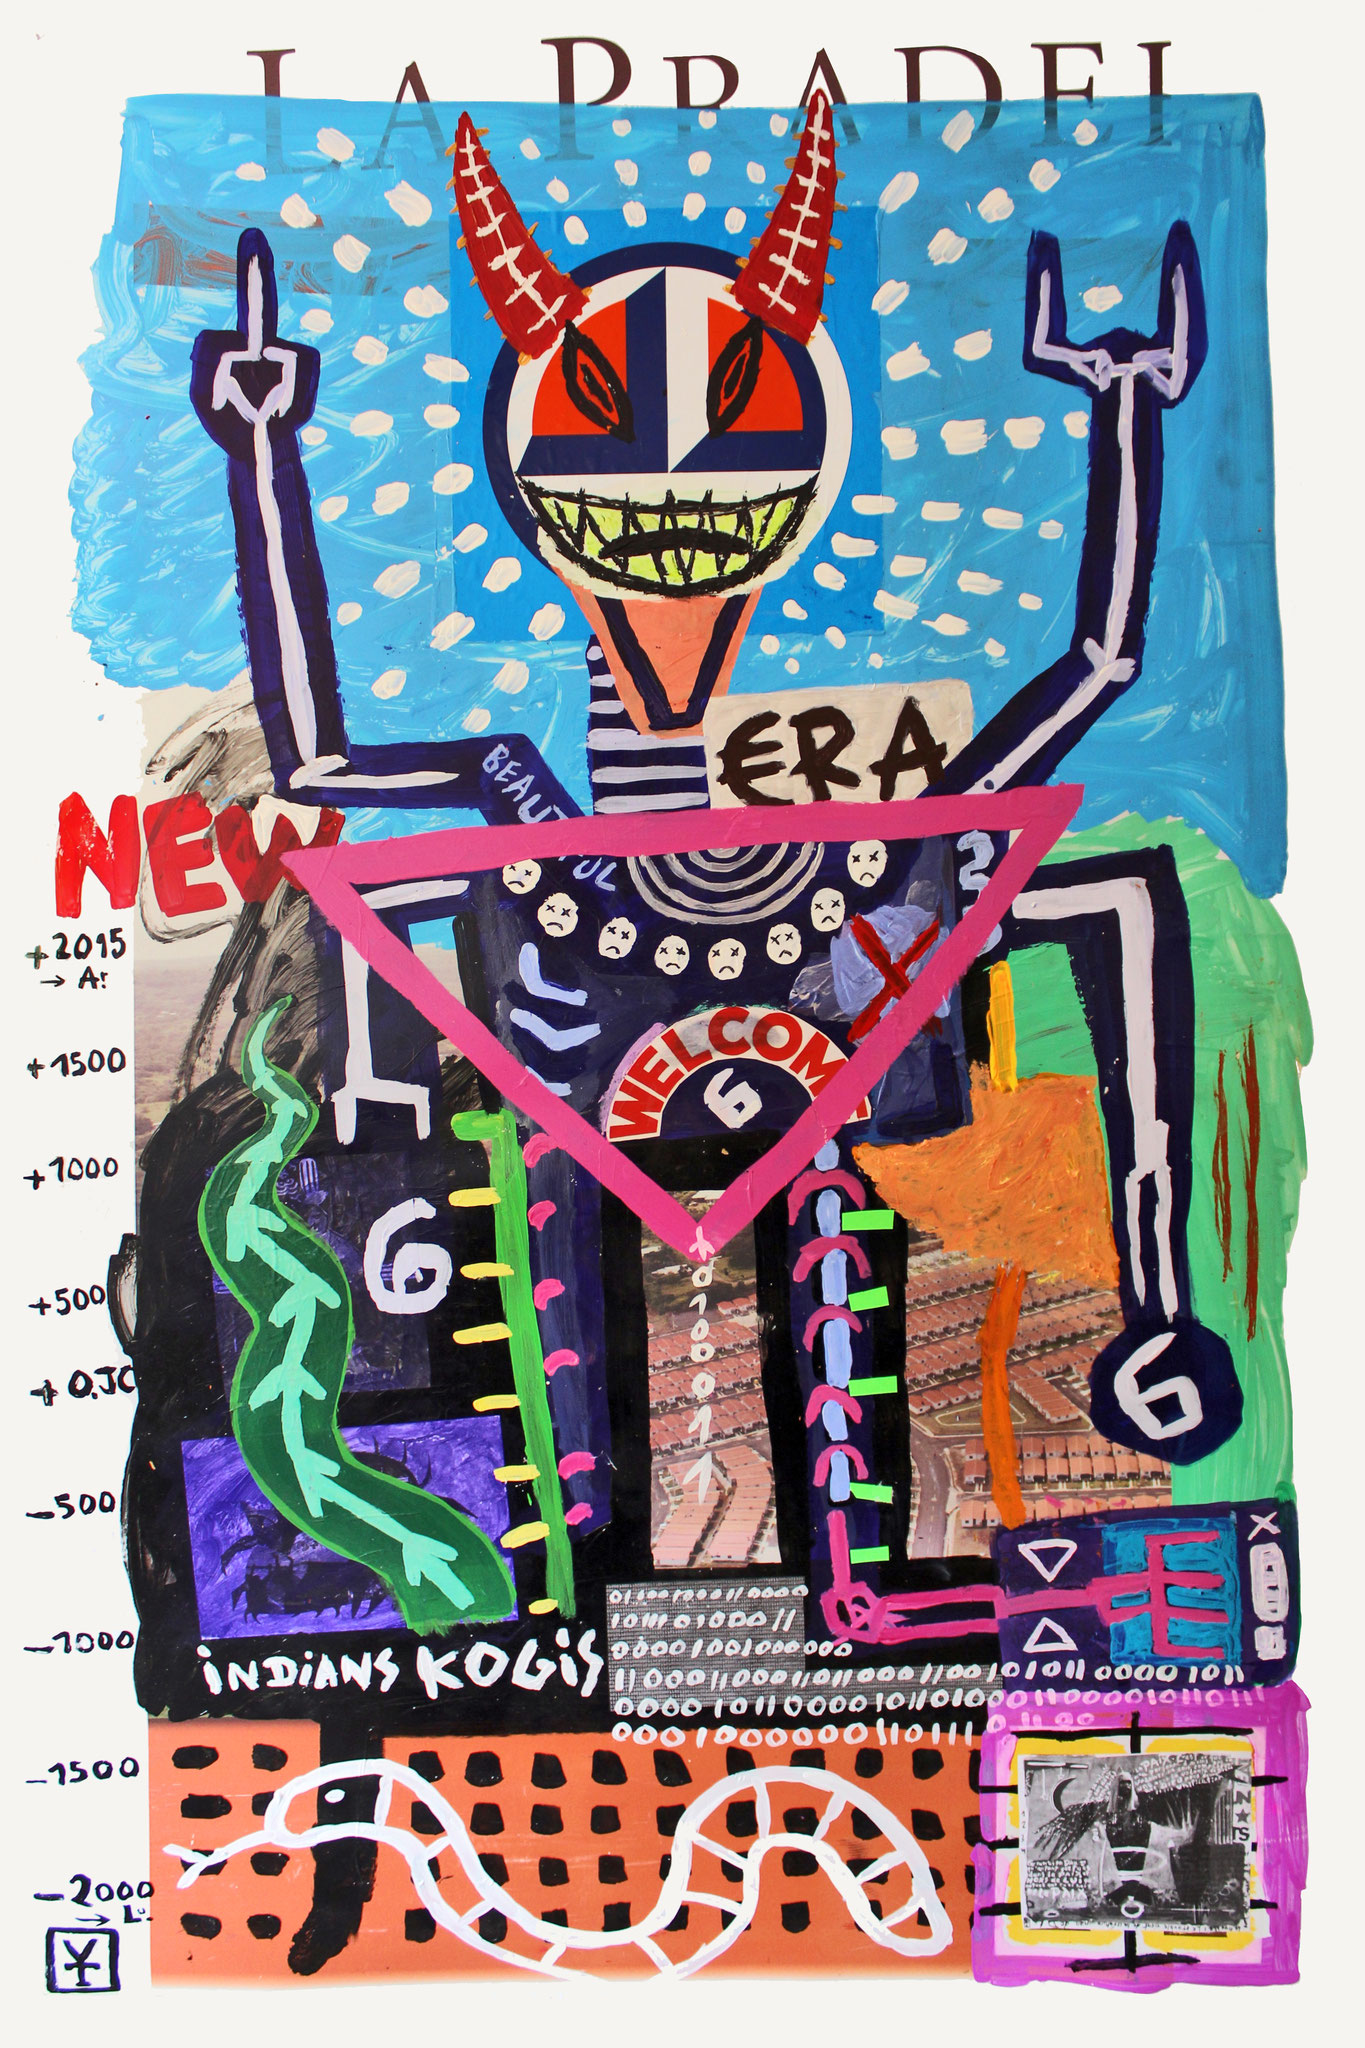 NEW BEAUTIFUL ERA - Acrylic and collage on plastic - 75x48inch- 2015